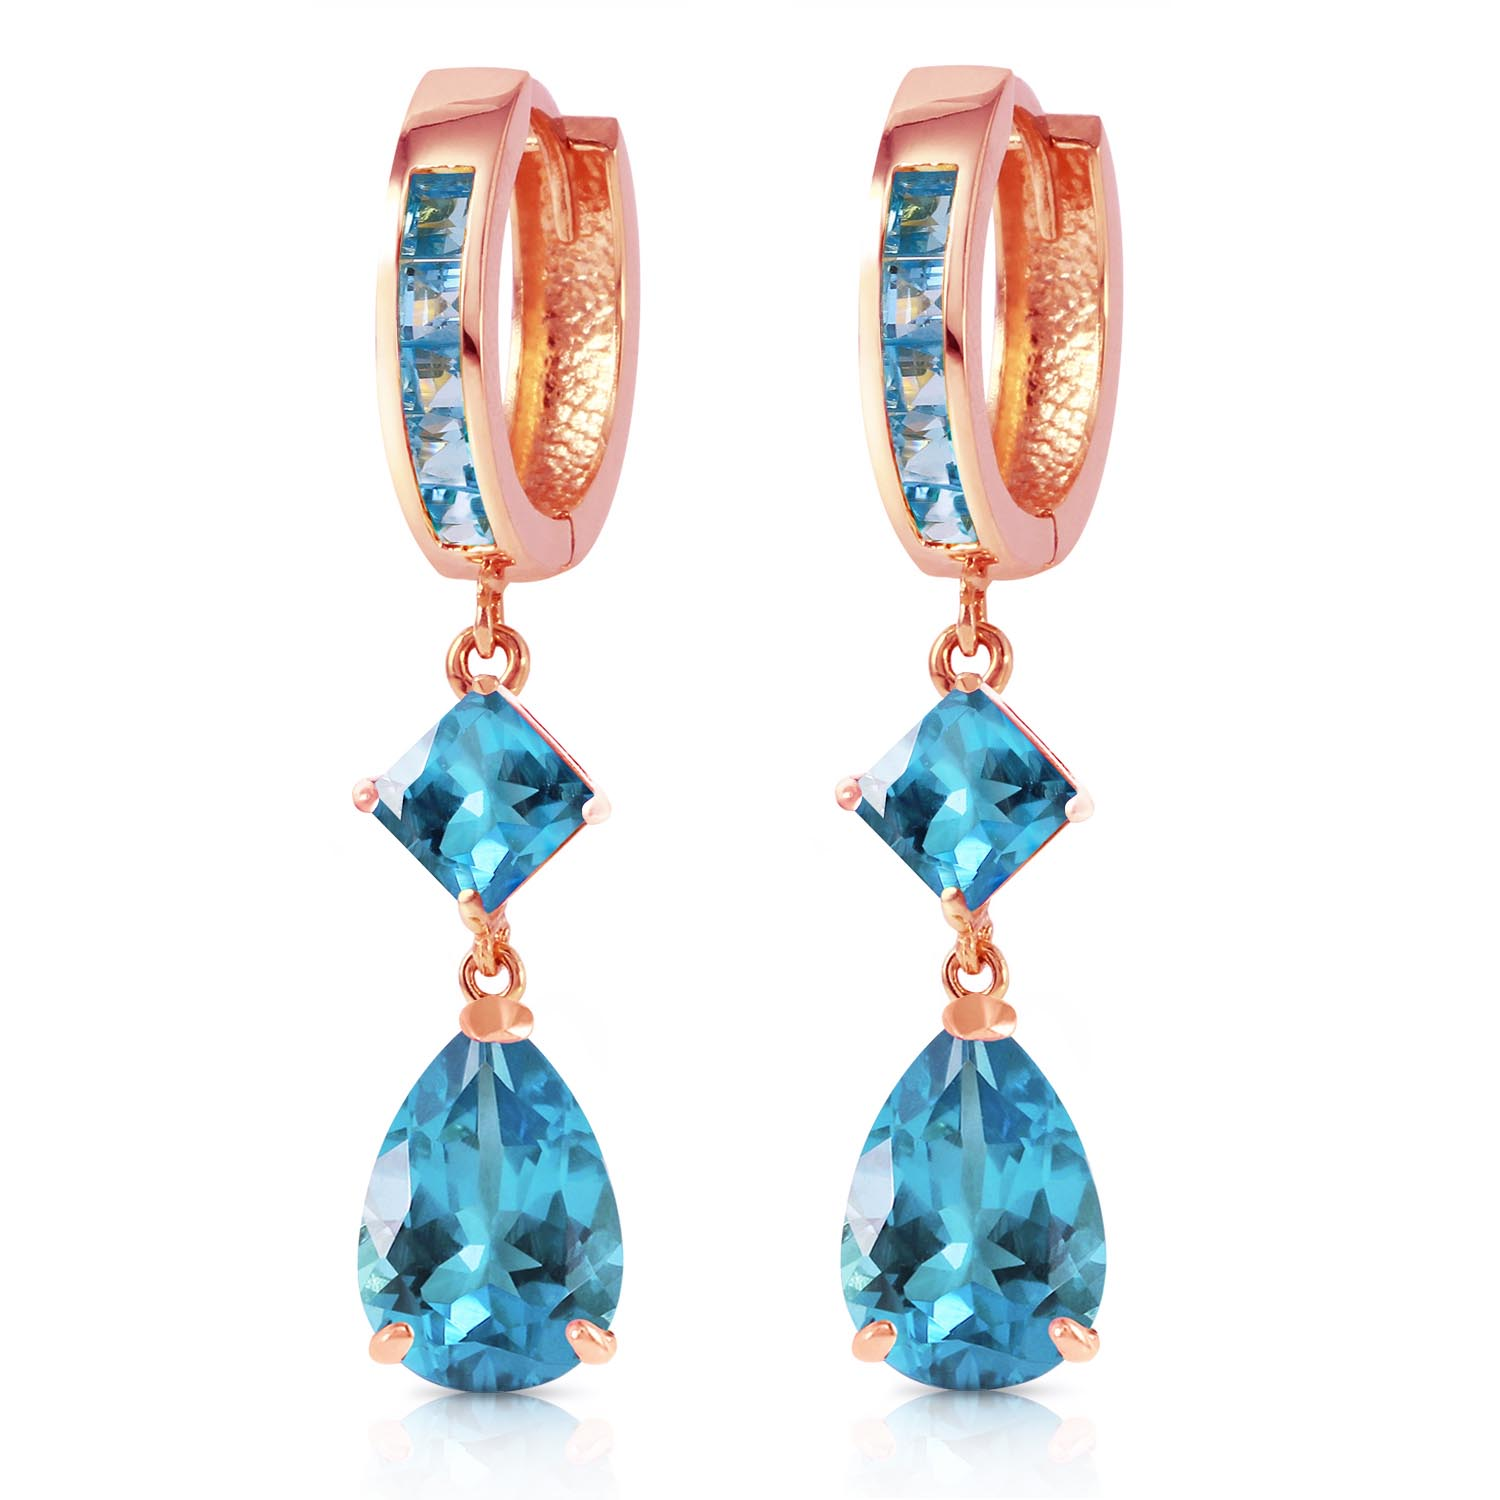 Blue Topaz Droplet Huggie Earrings 5.62ctw in 14K Rose Gold